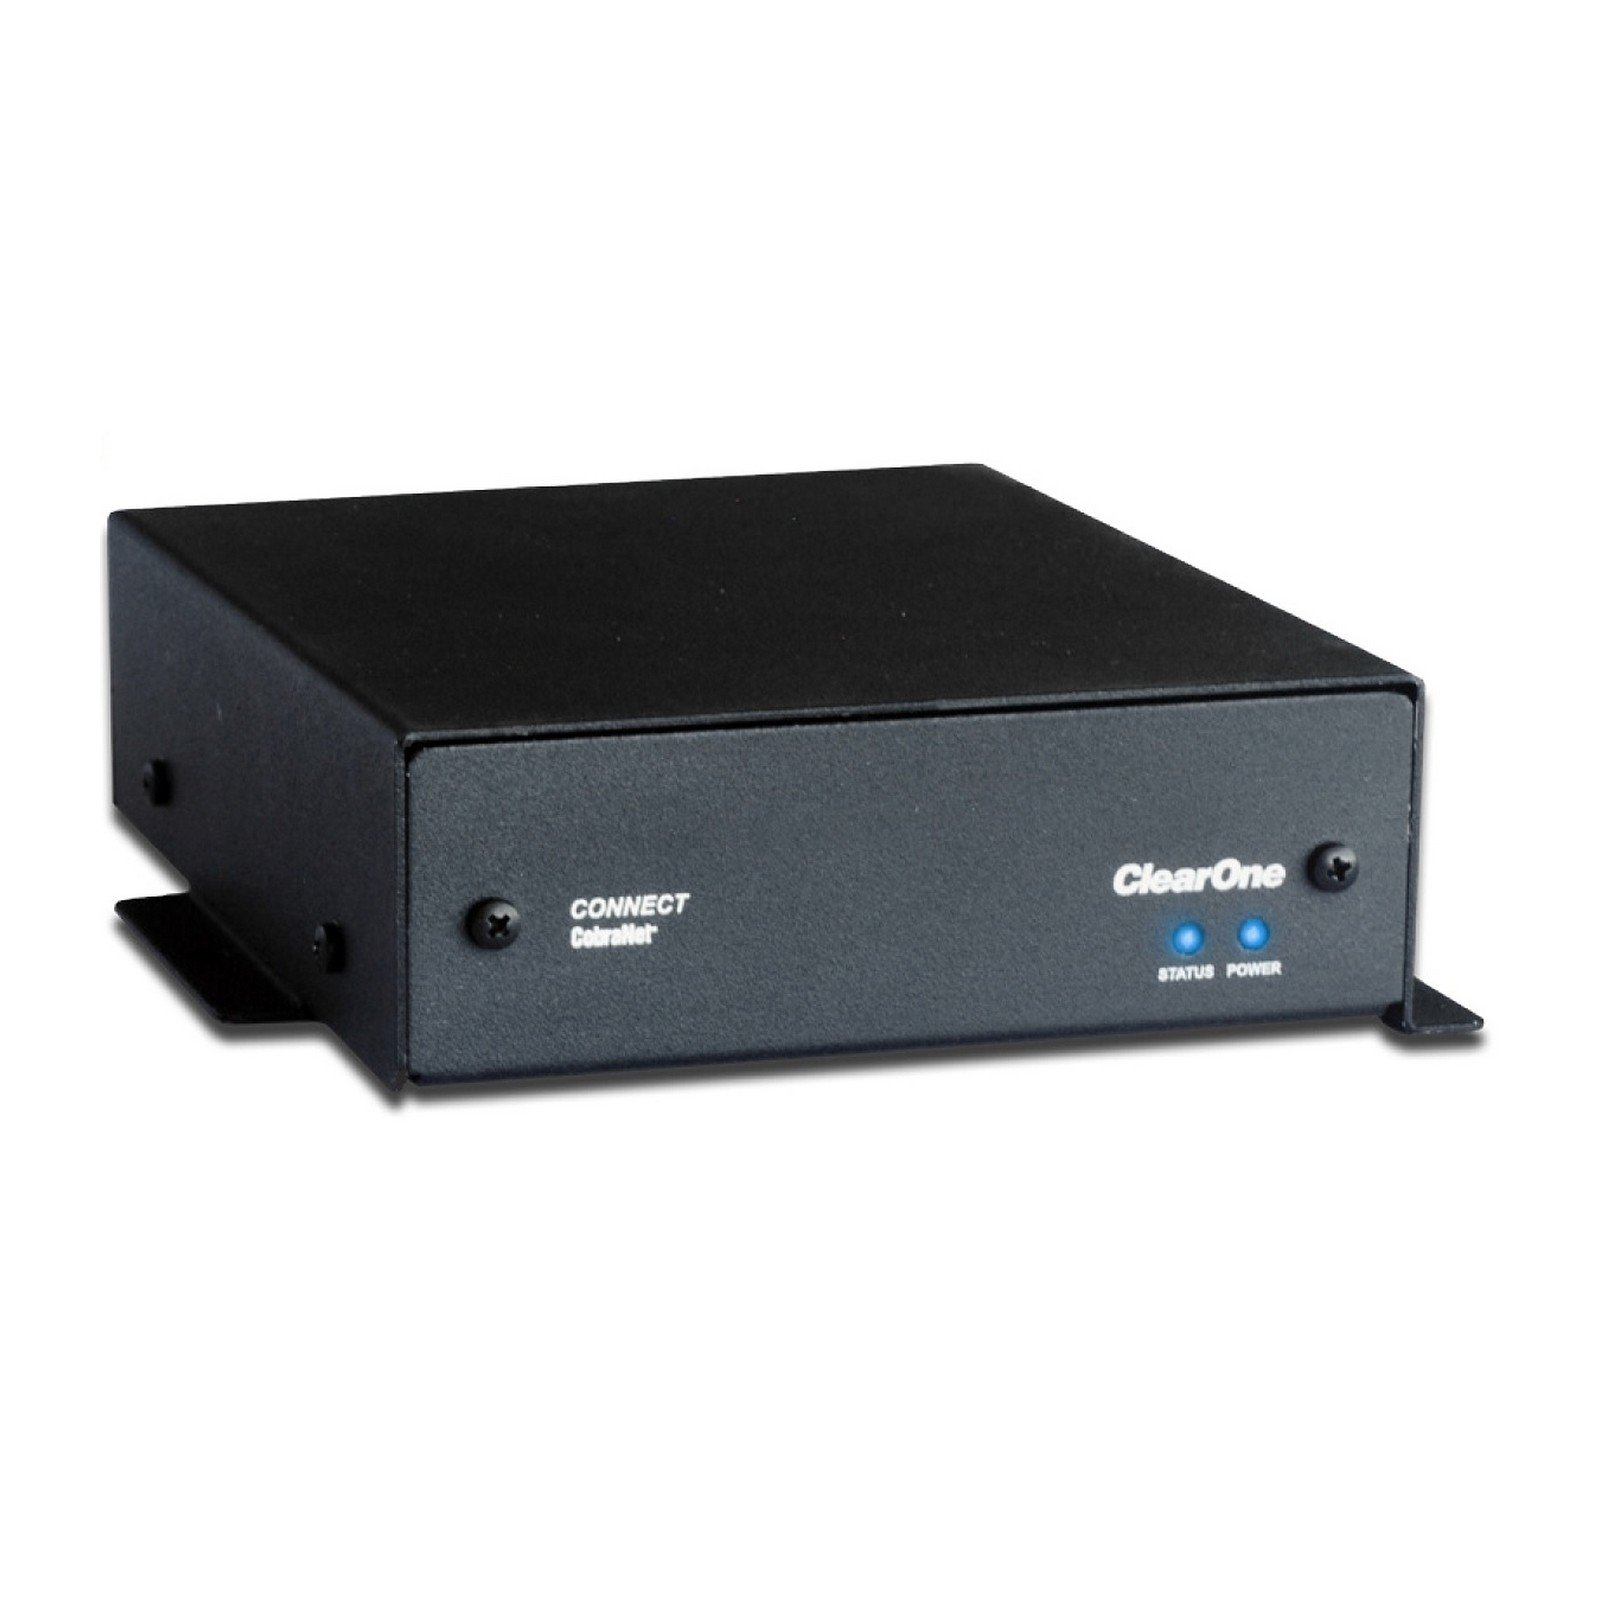 ClearOne CONNECT CobraNet | Compact 8x8 I/O Network Audio Extends Bridge for Converge Pro Converge SR Series by ClearOne